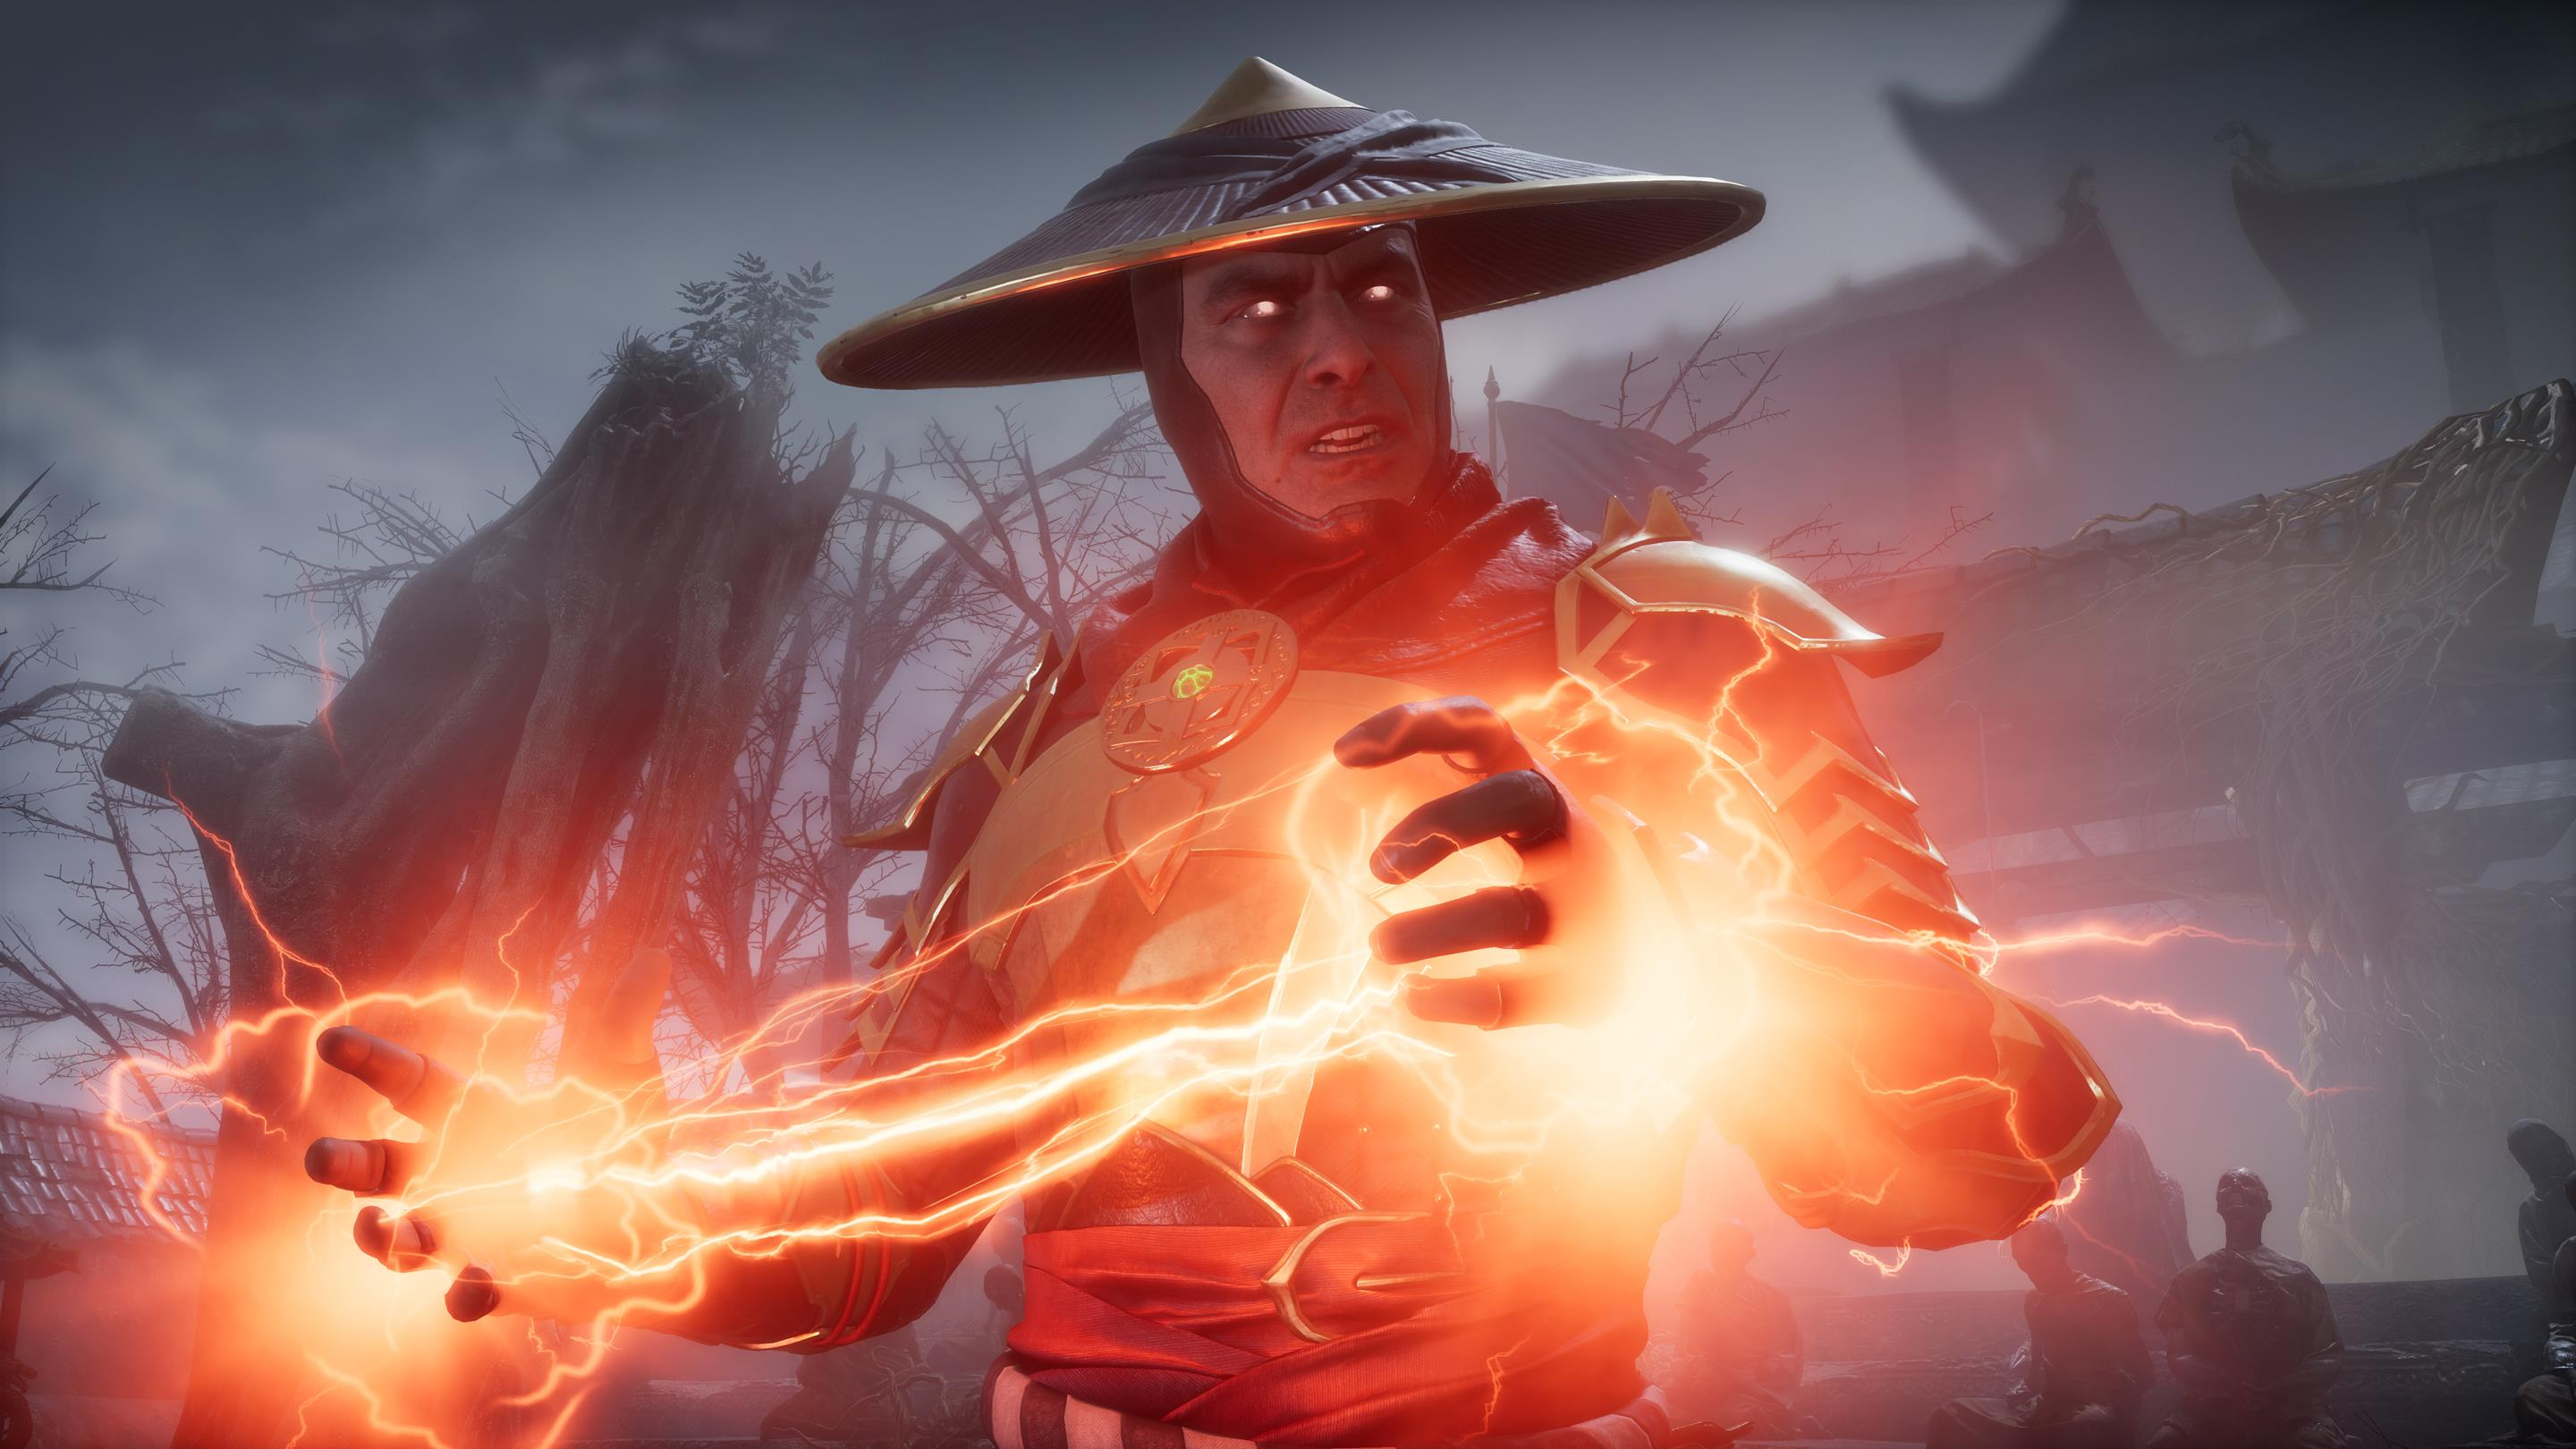 Video game release dates 2019 in Melbourne